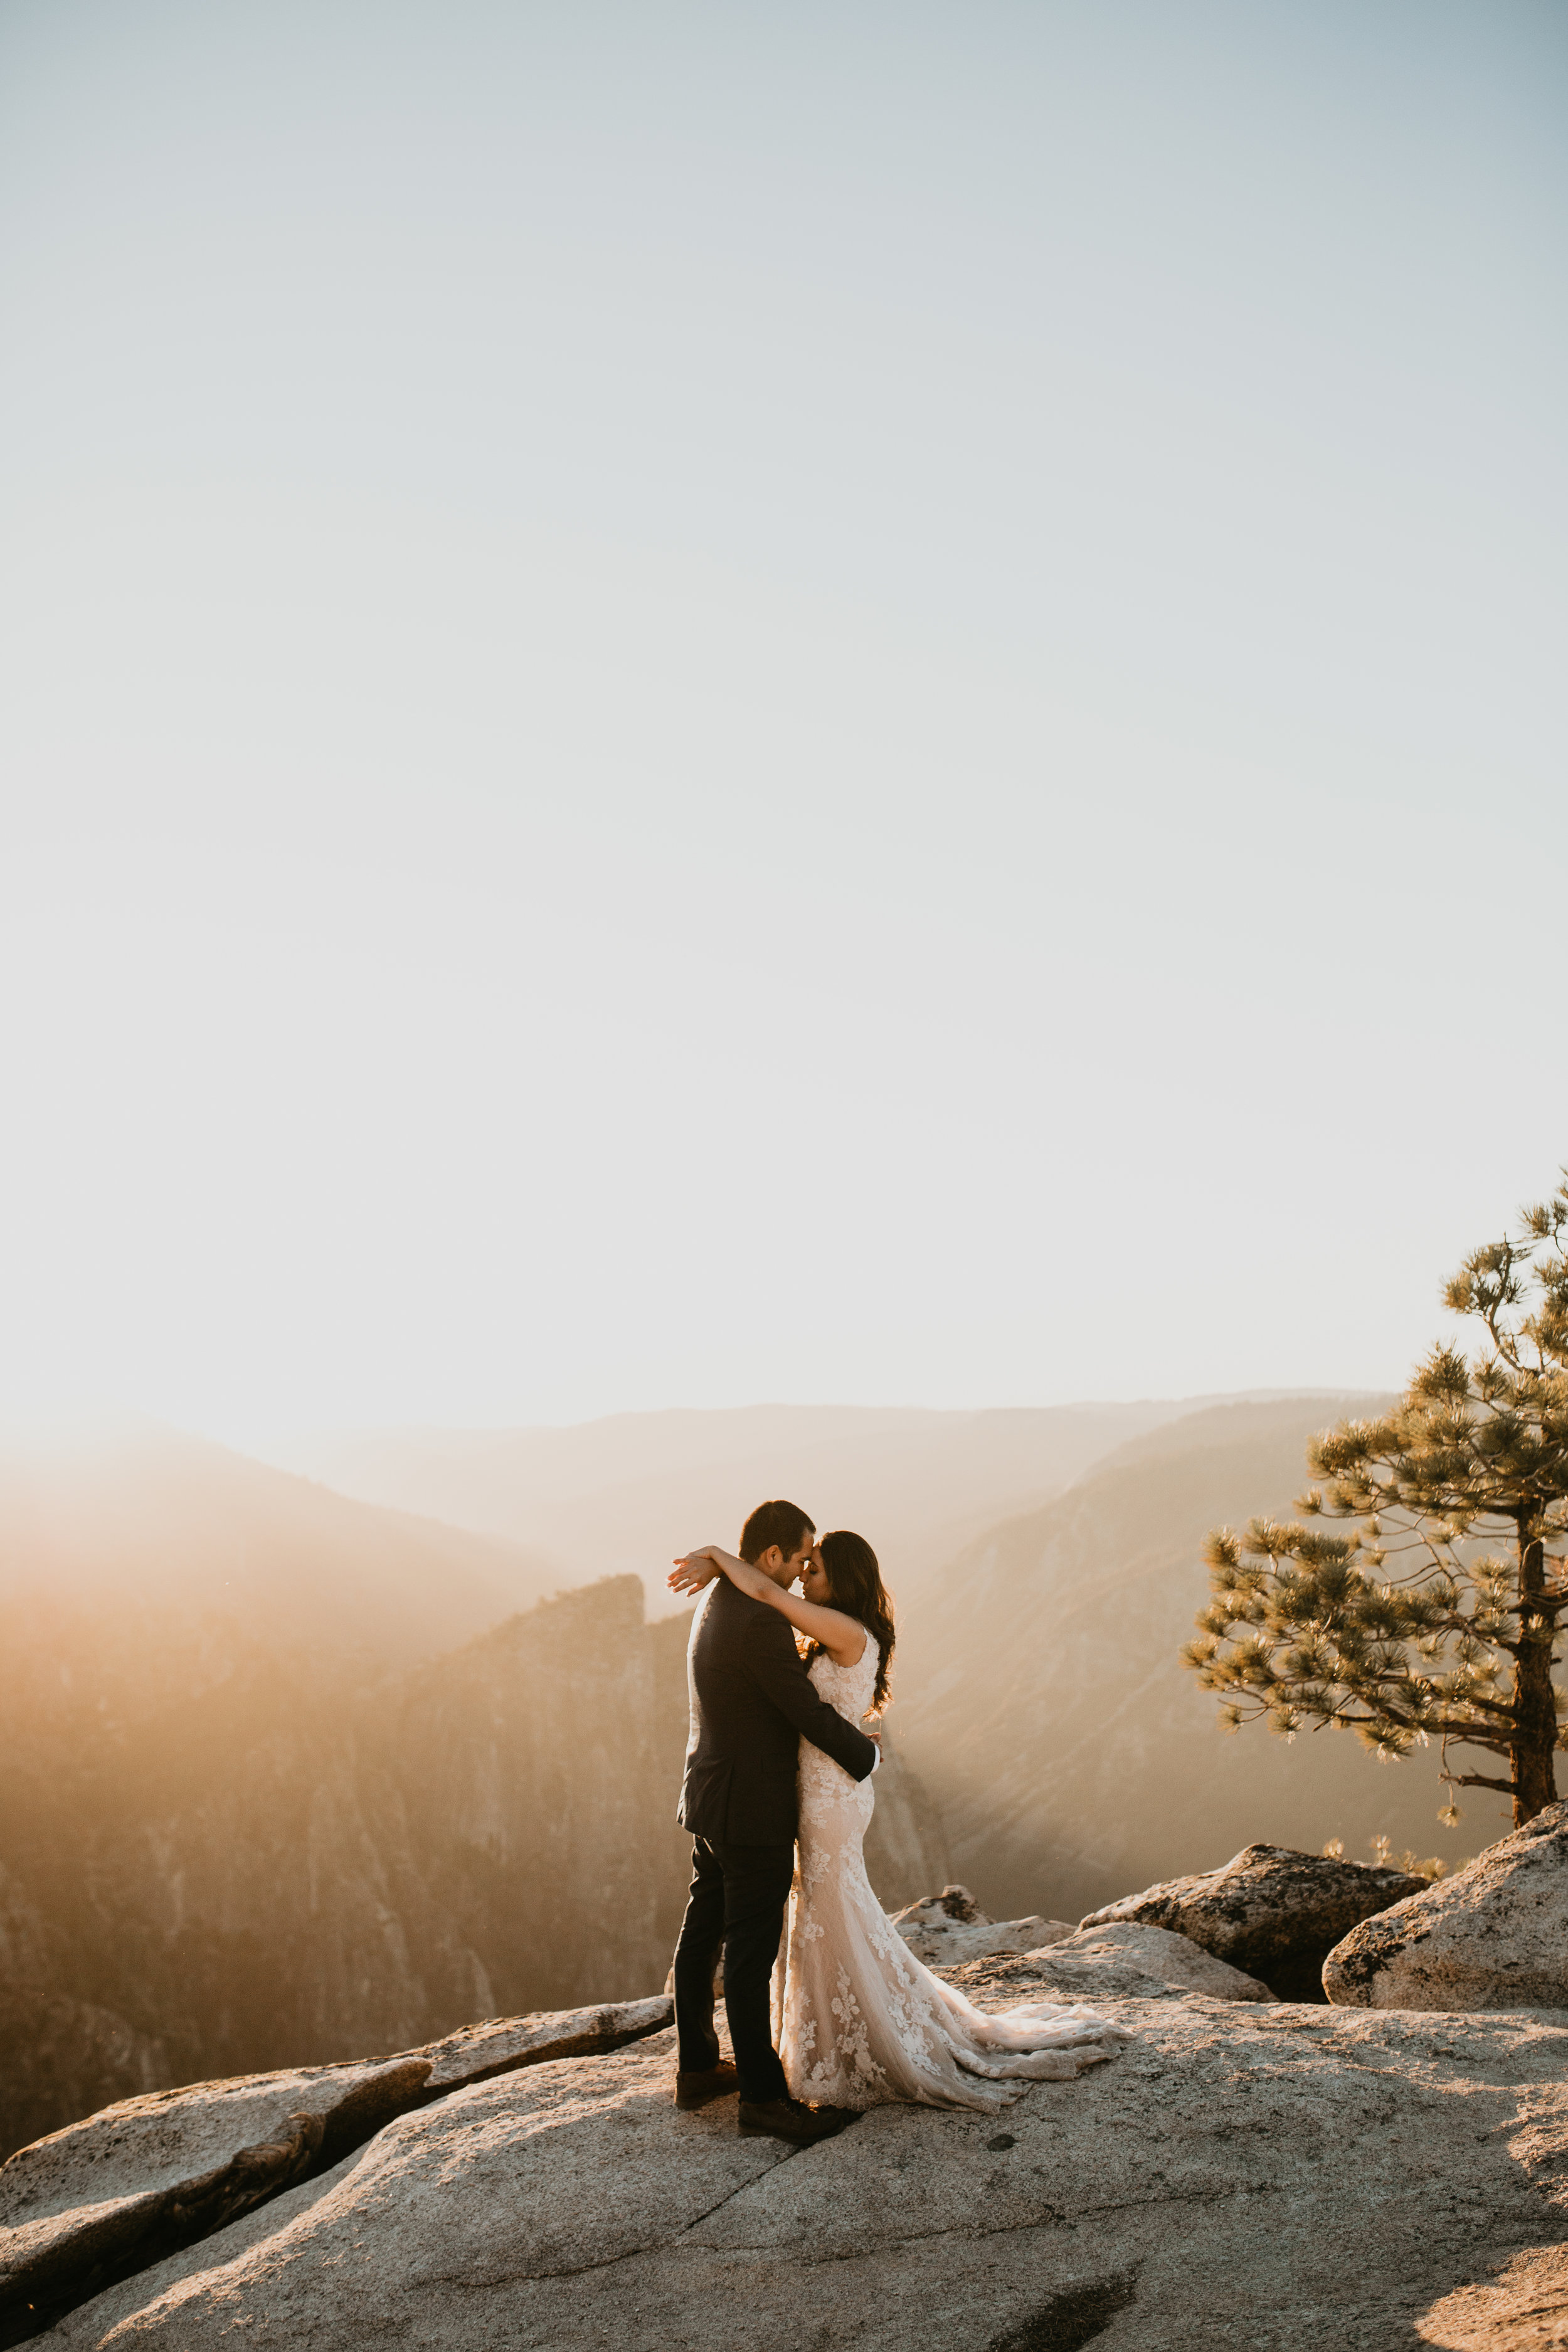 nicole-daacke-photography-intimate-elopement-wedding-yosemite-national-park-california-taft-point-sunset-photos-yosemite-valley-tunnel-view-first-look-sunrise-golden-granite-hiking-adventure-wedding-adventurous-elopement-photographer-107.jpg